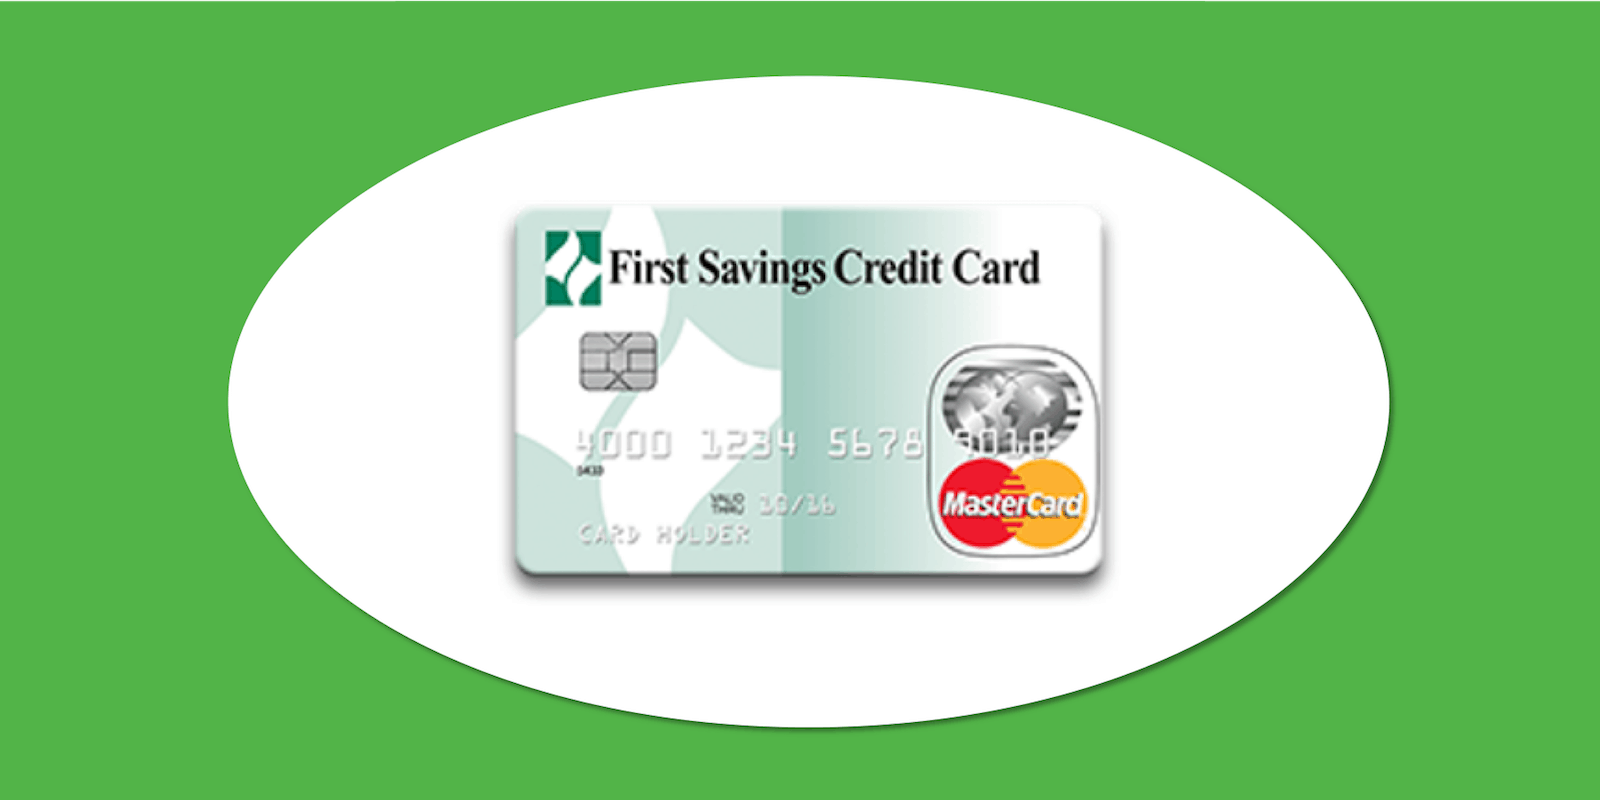 First Savings Credit Card - Feature